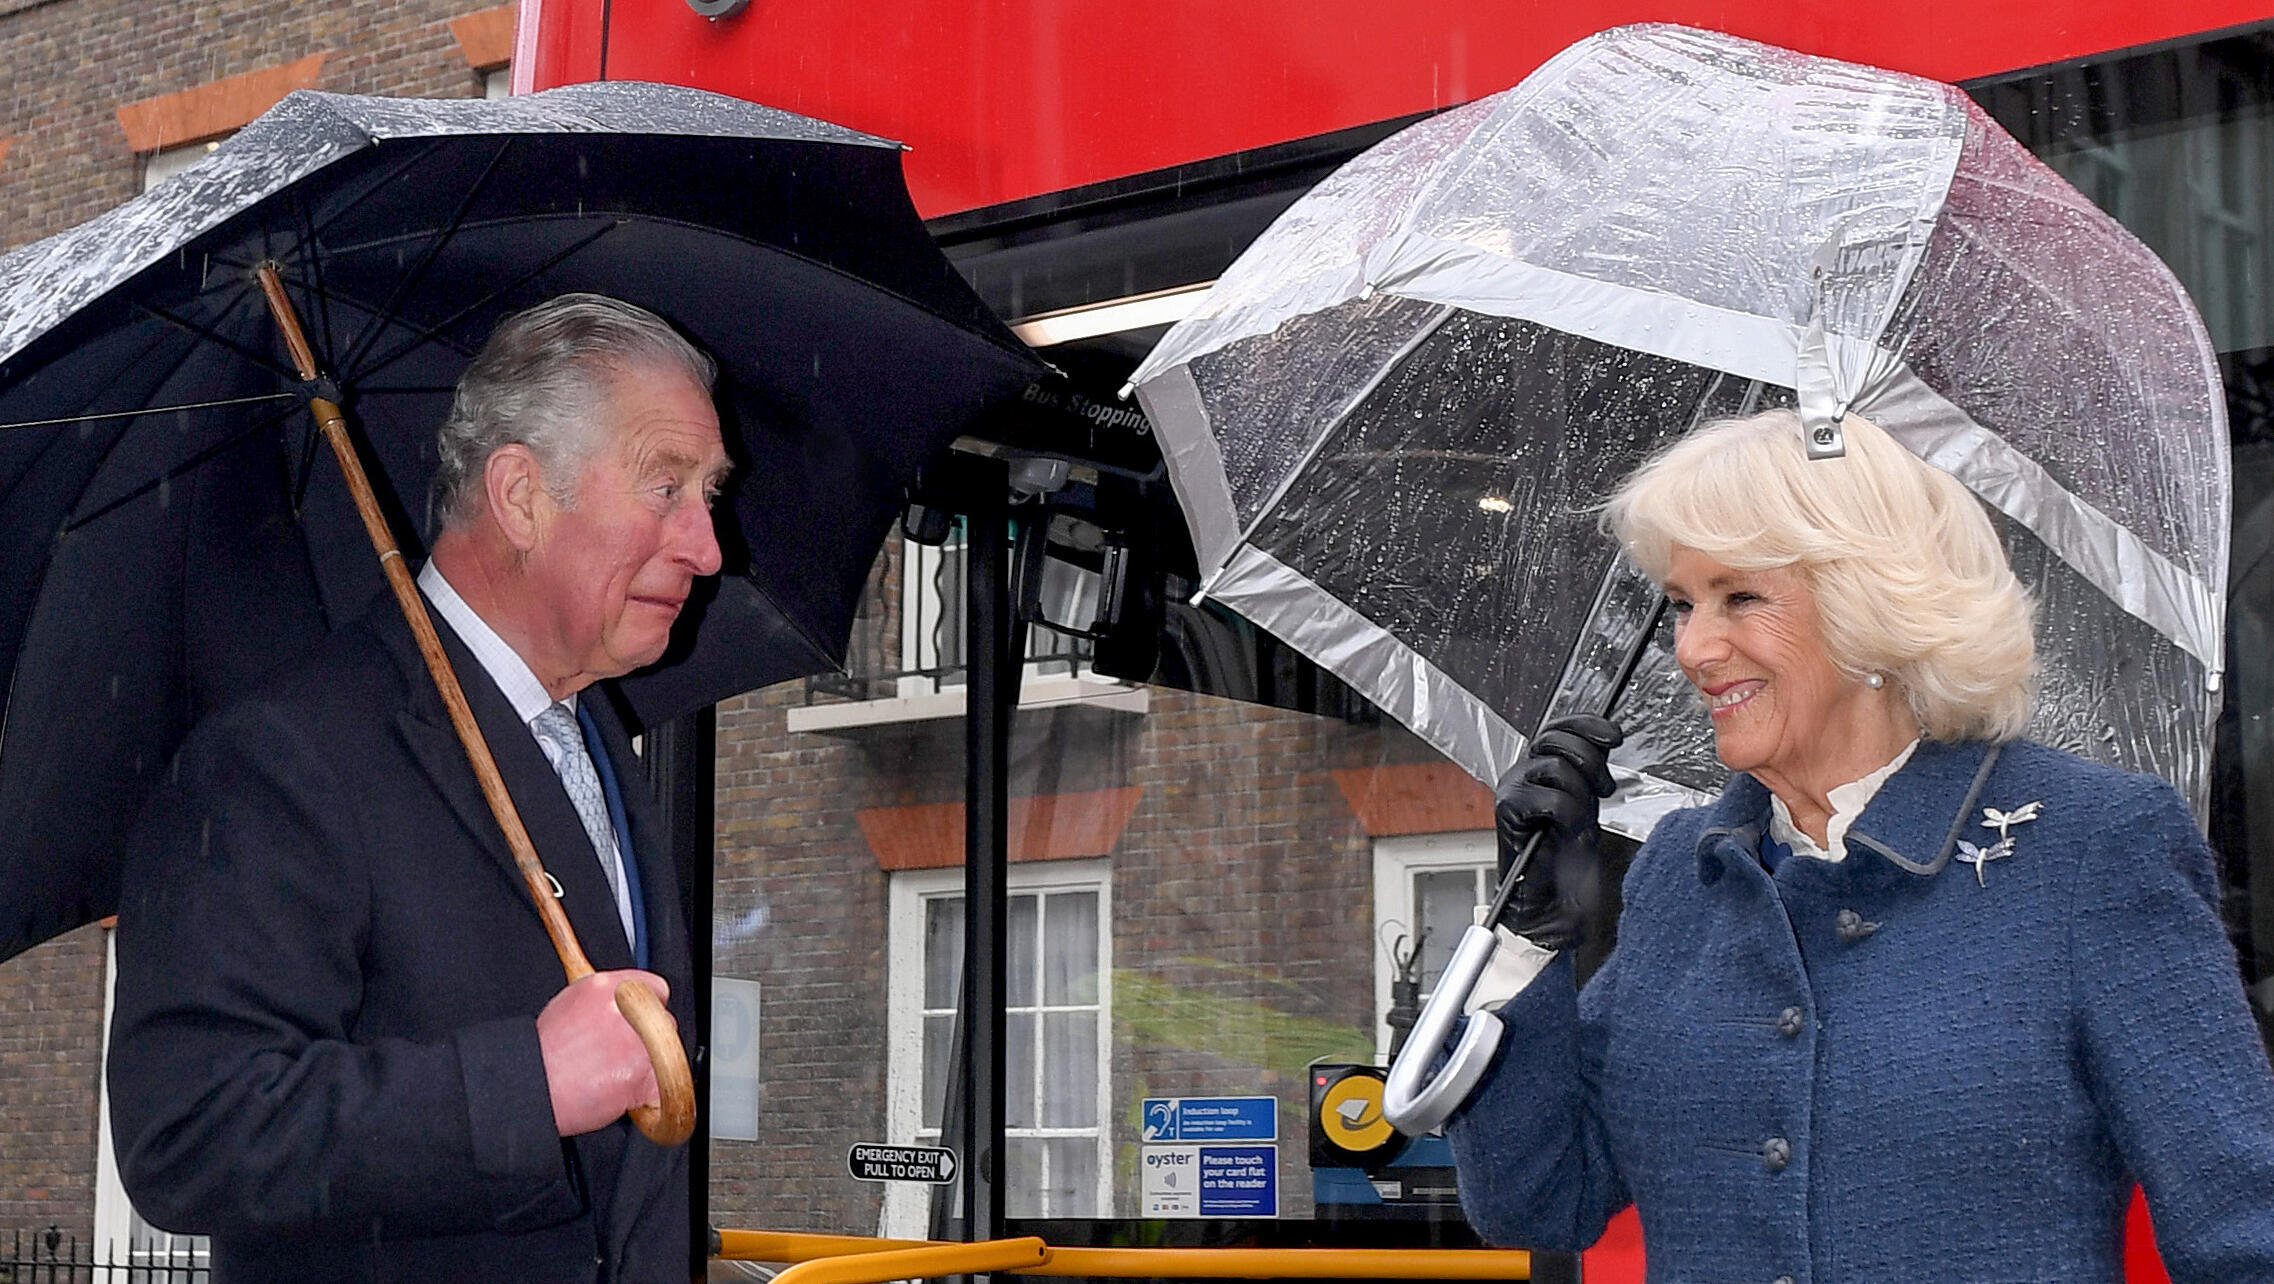 Prince Charles and Camilla, Duchess of Cornwall in London at the beginnning of March. Camilla has tested negative for Covid-19